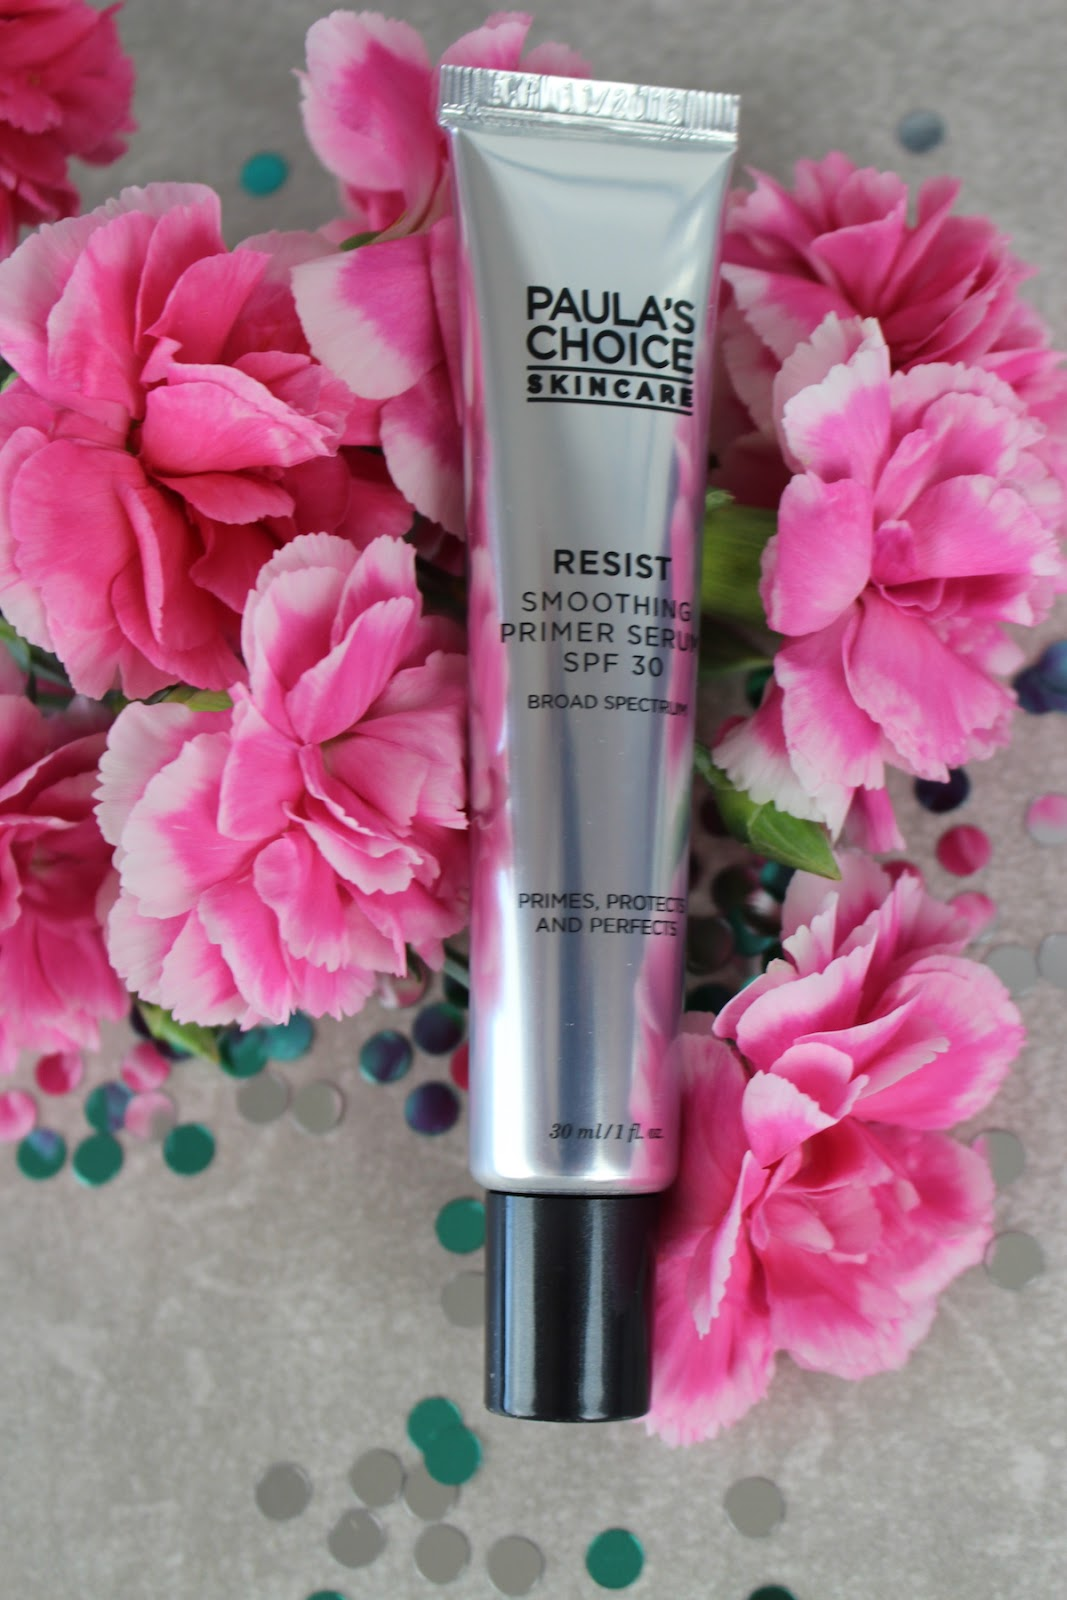 This is a close up of Paula's Choice Smoothing Primer Serum SPF 30, surrounded by beautiful pink flowers.